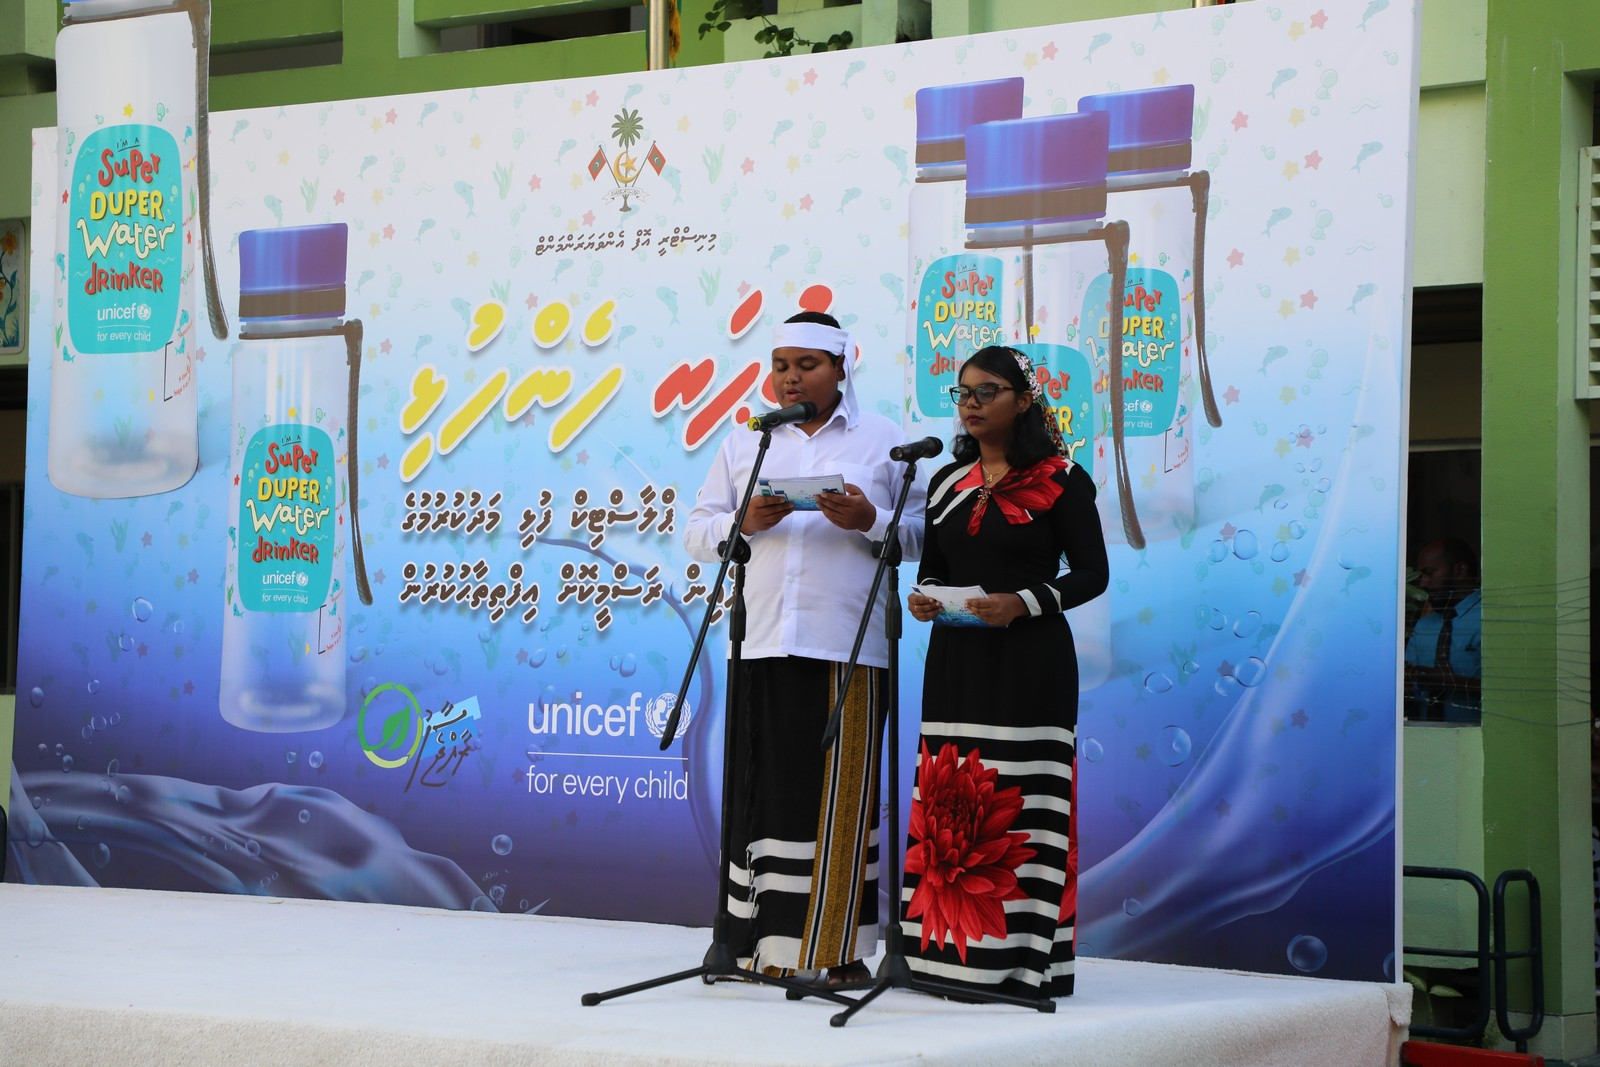 The National Campaign to reduce plastic bottles launched – Ministry